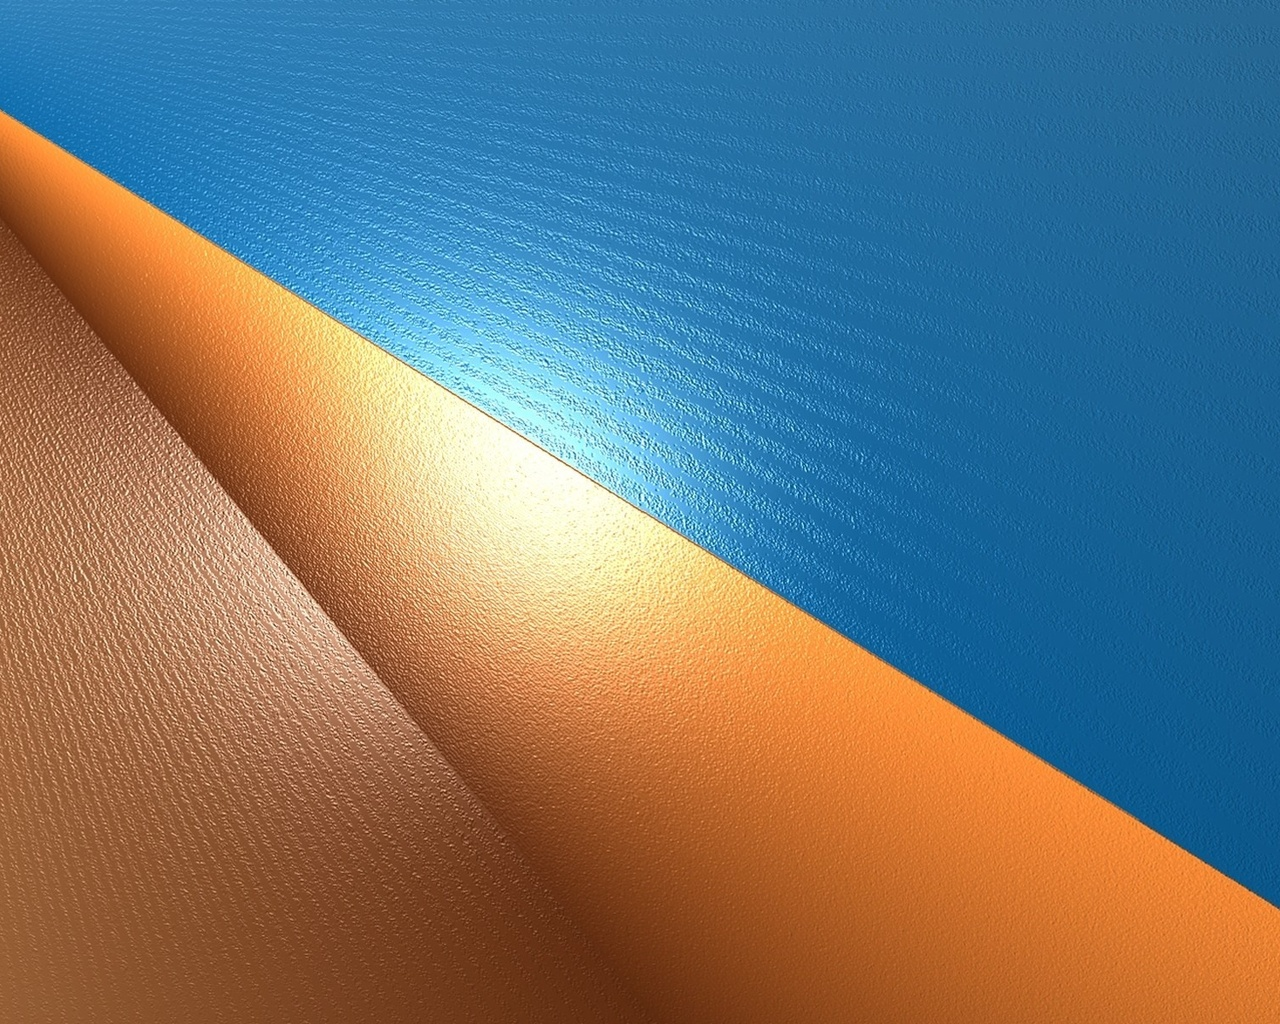 Blue orange abstract textures PPT Backgrounds for your PowerPoint 1280x1024